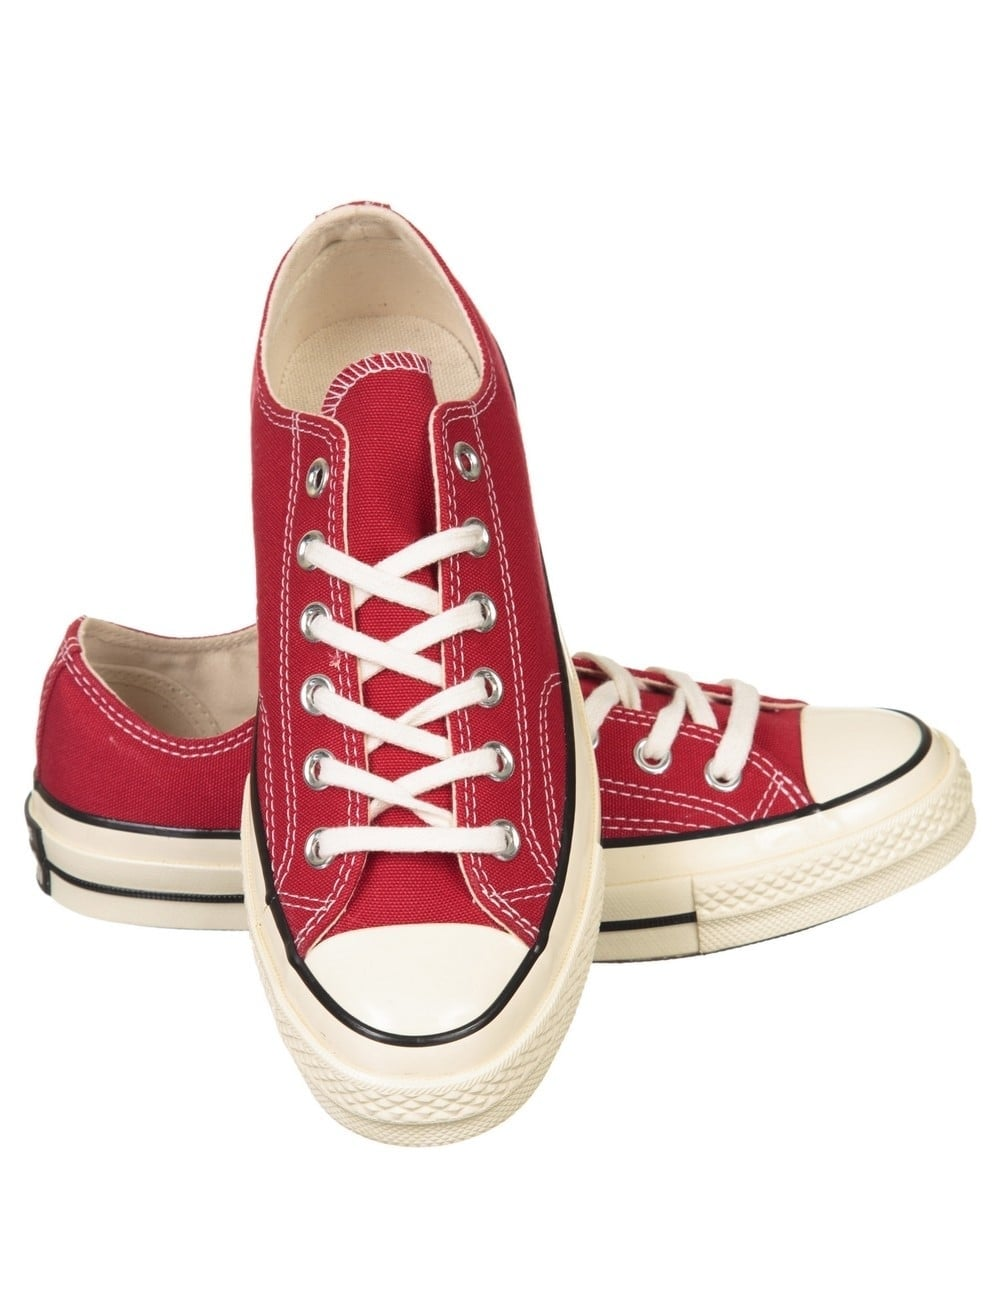 converse shoes history timeline